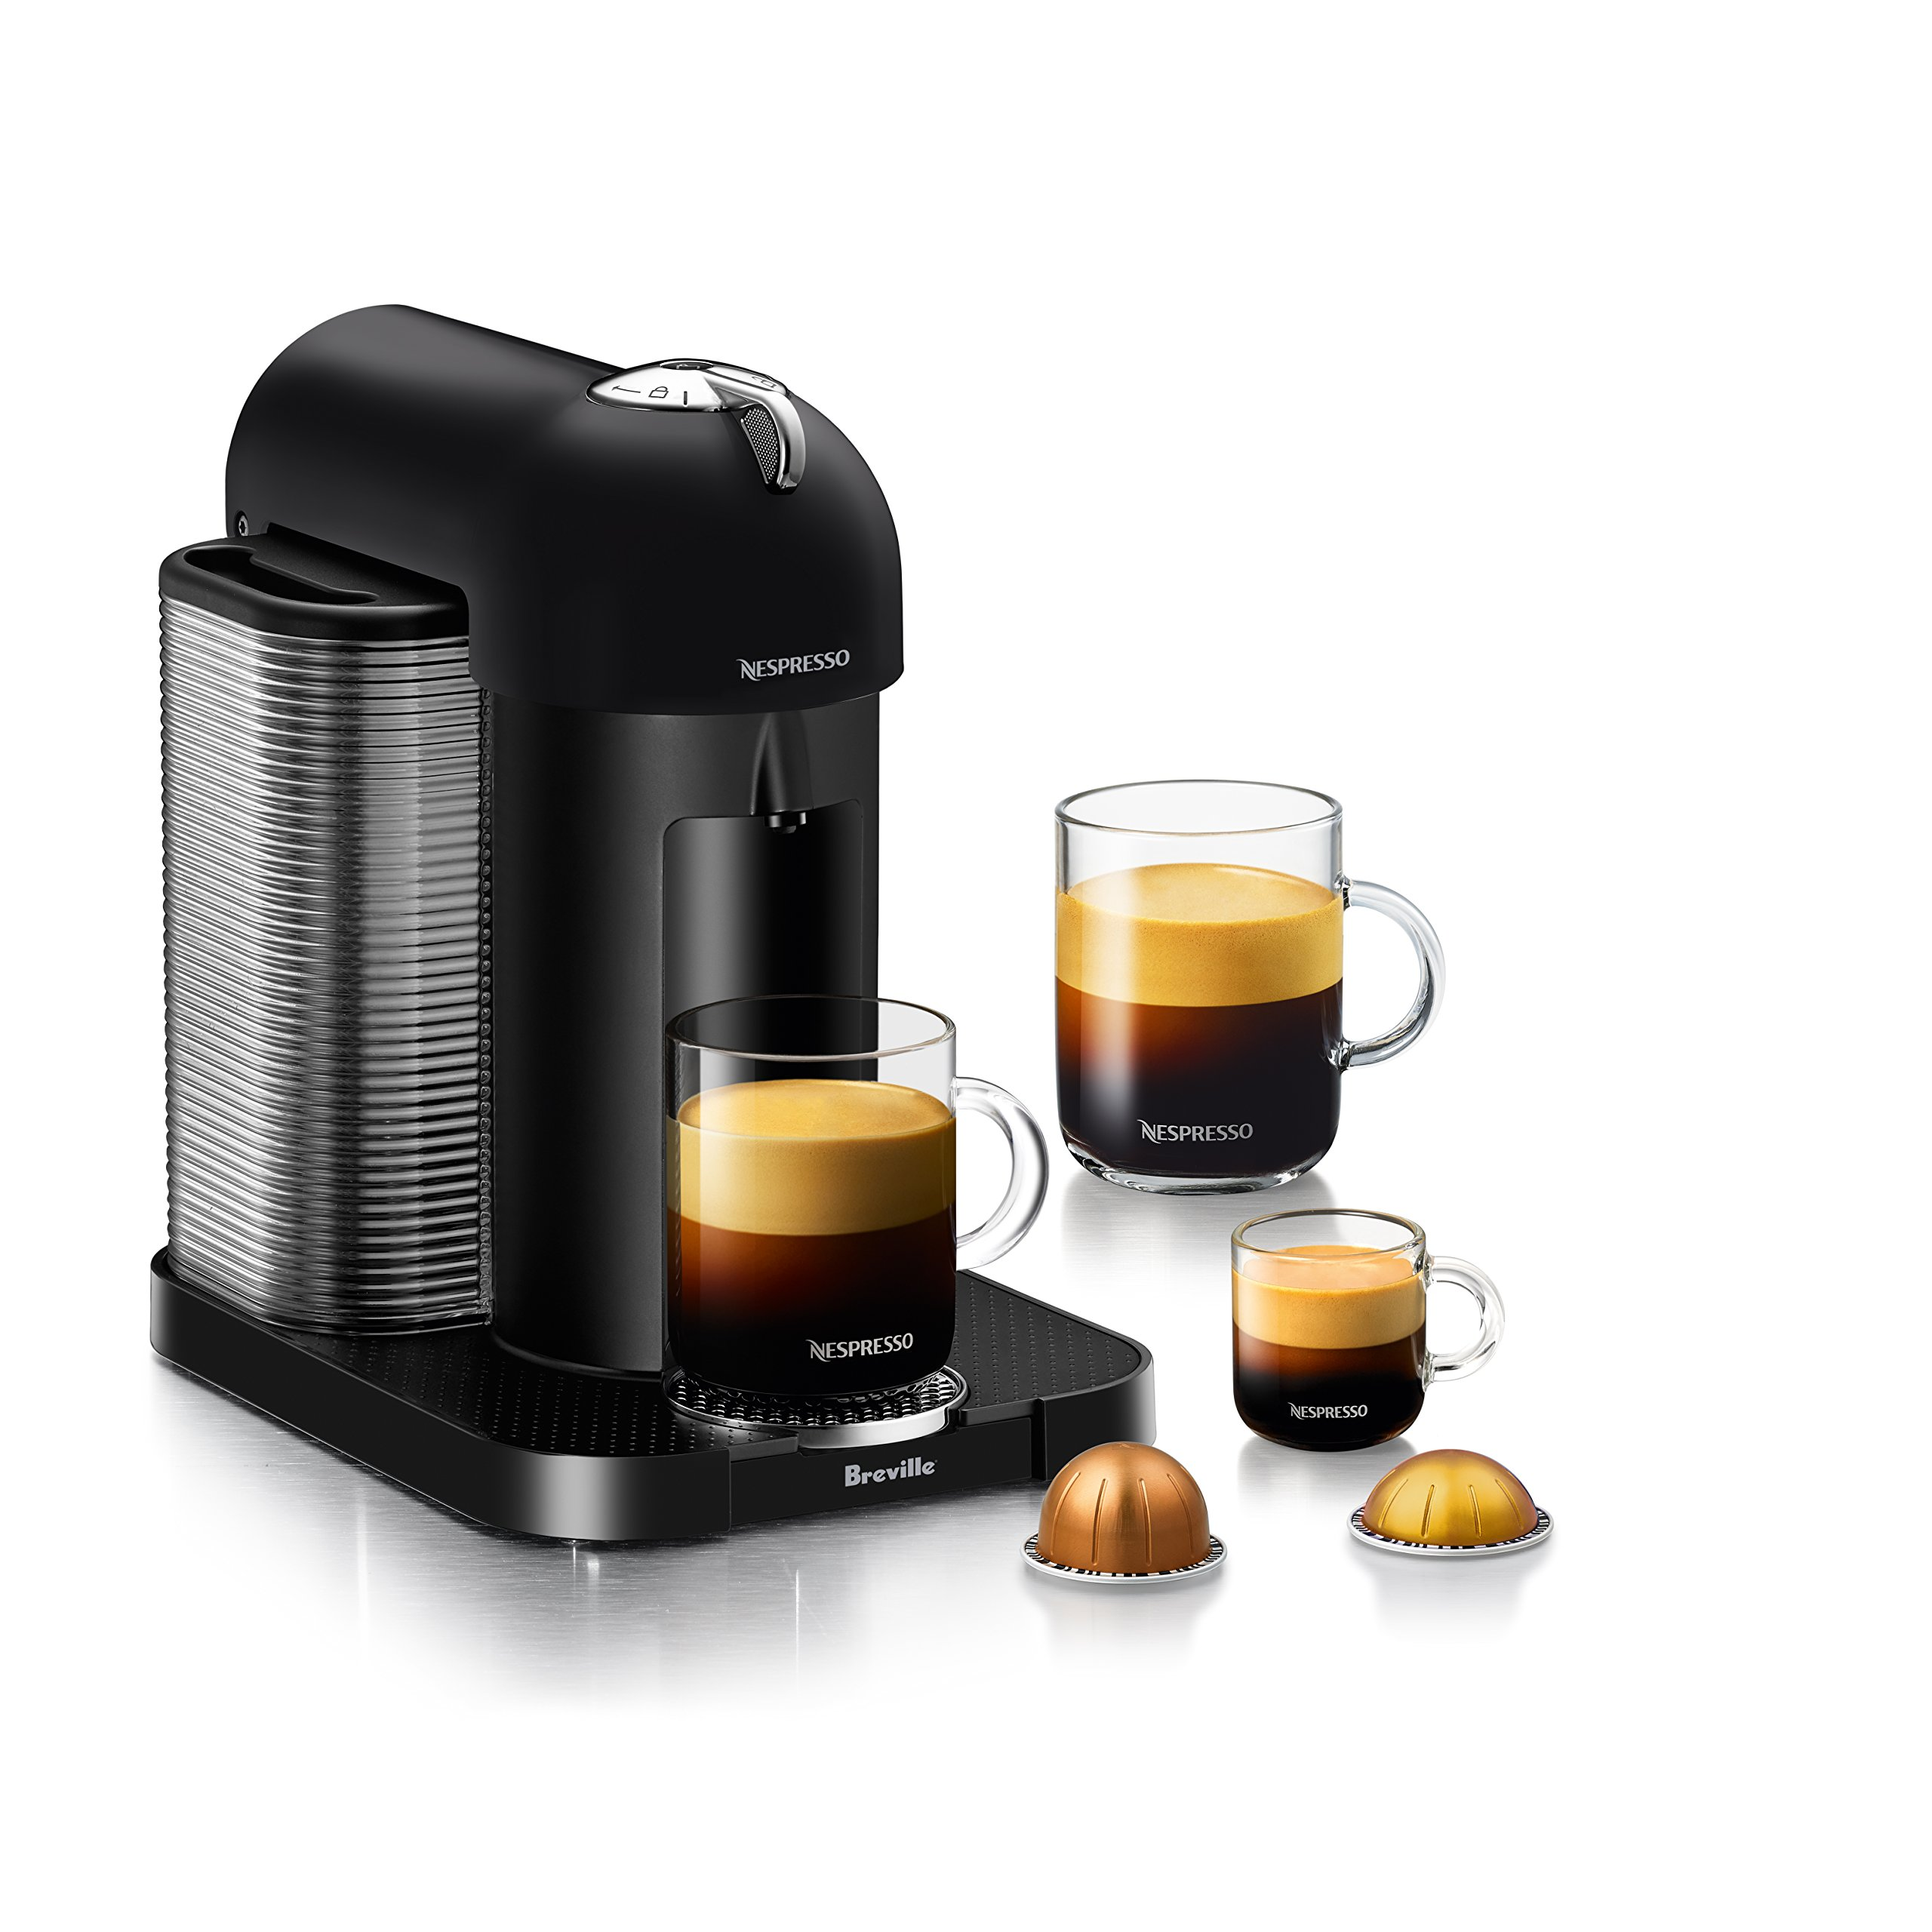 Nespresso Vertuo Coffee and Espresso Machine by Breville, Matte Black by Breville (Image #2)